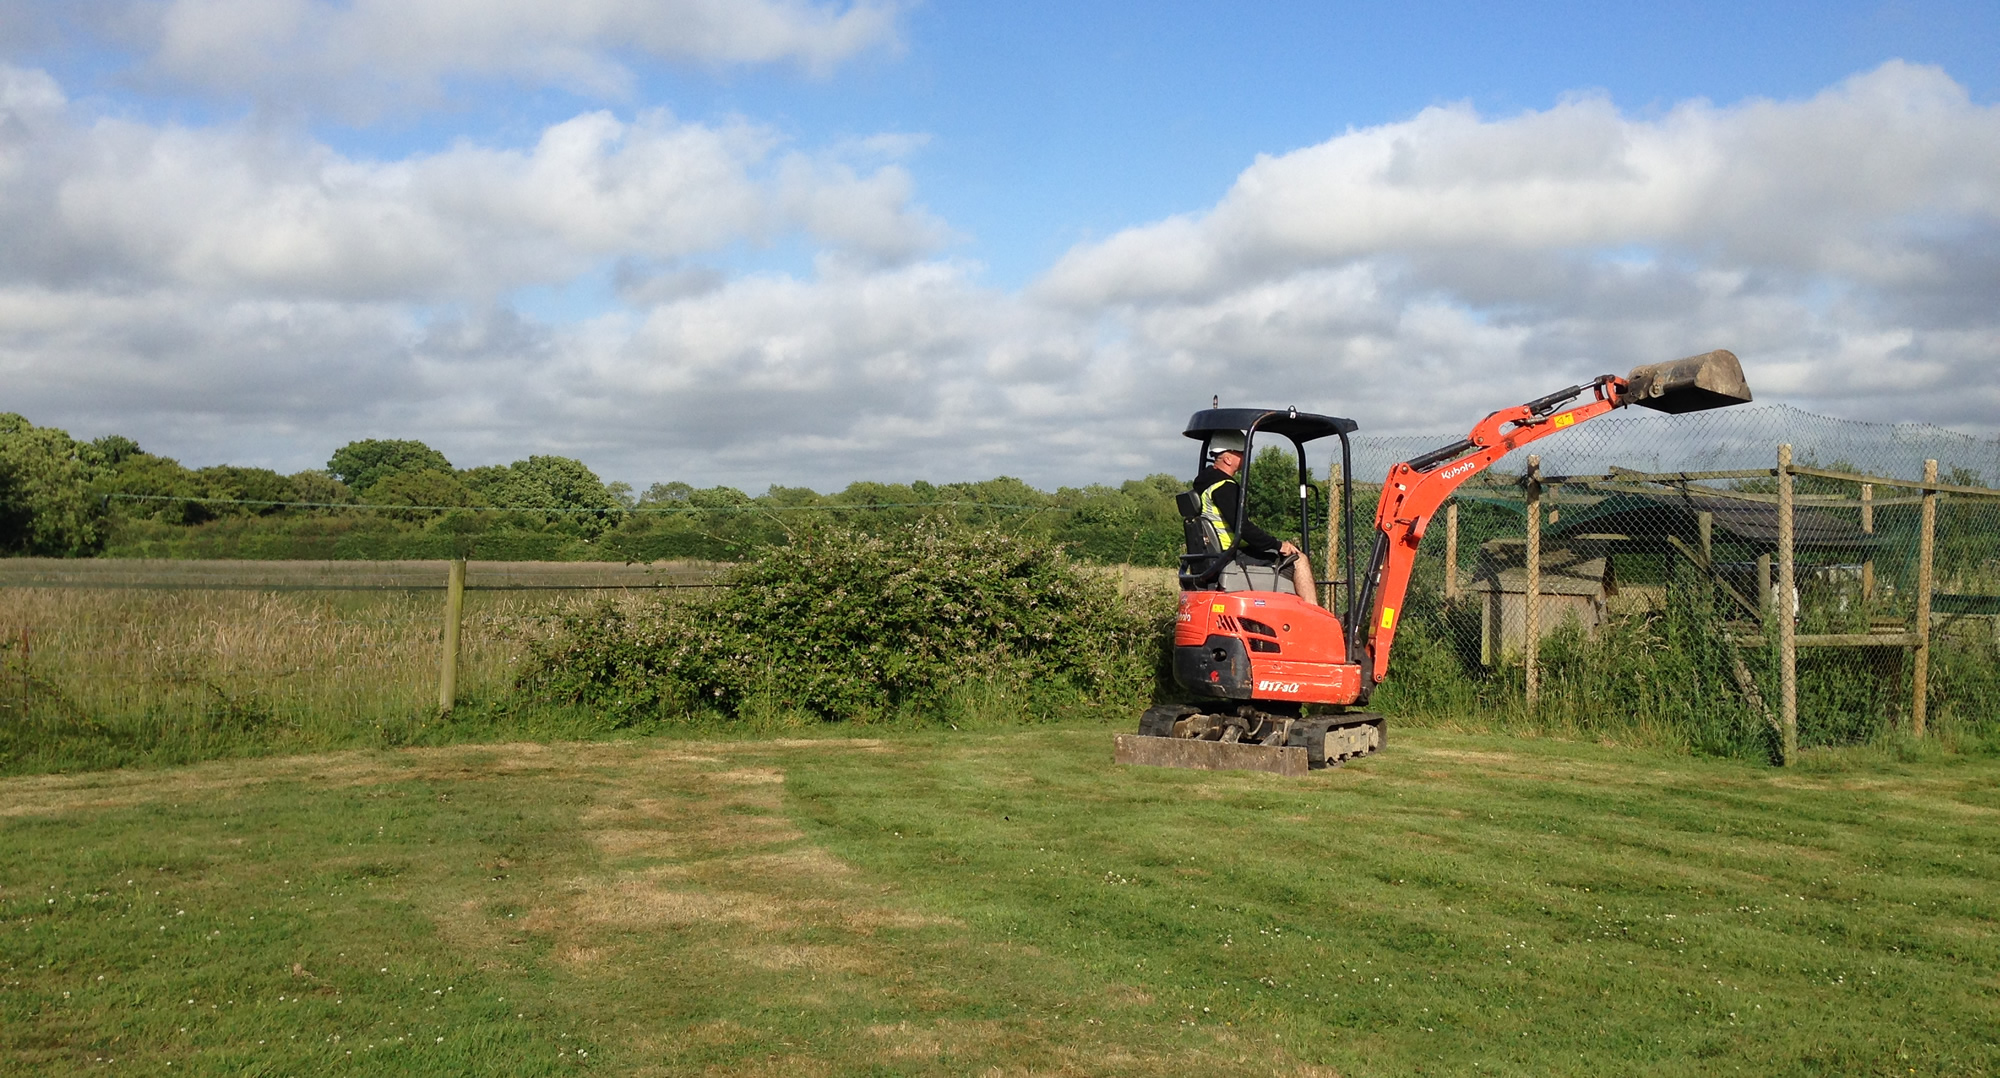 jem with digger at fence in field